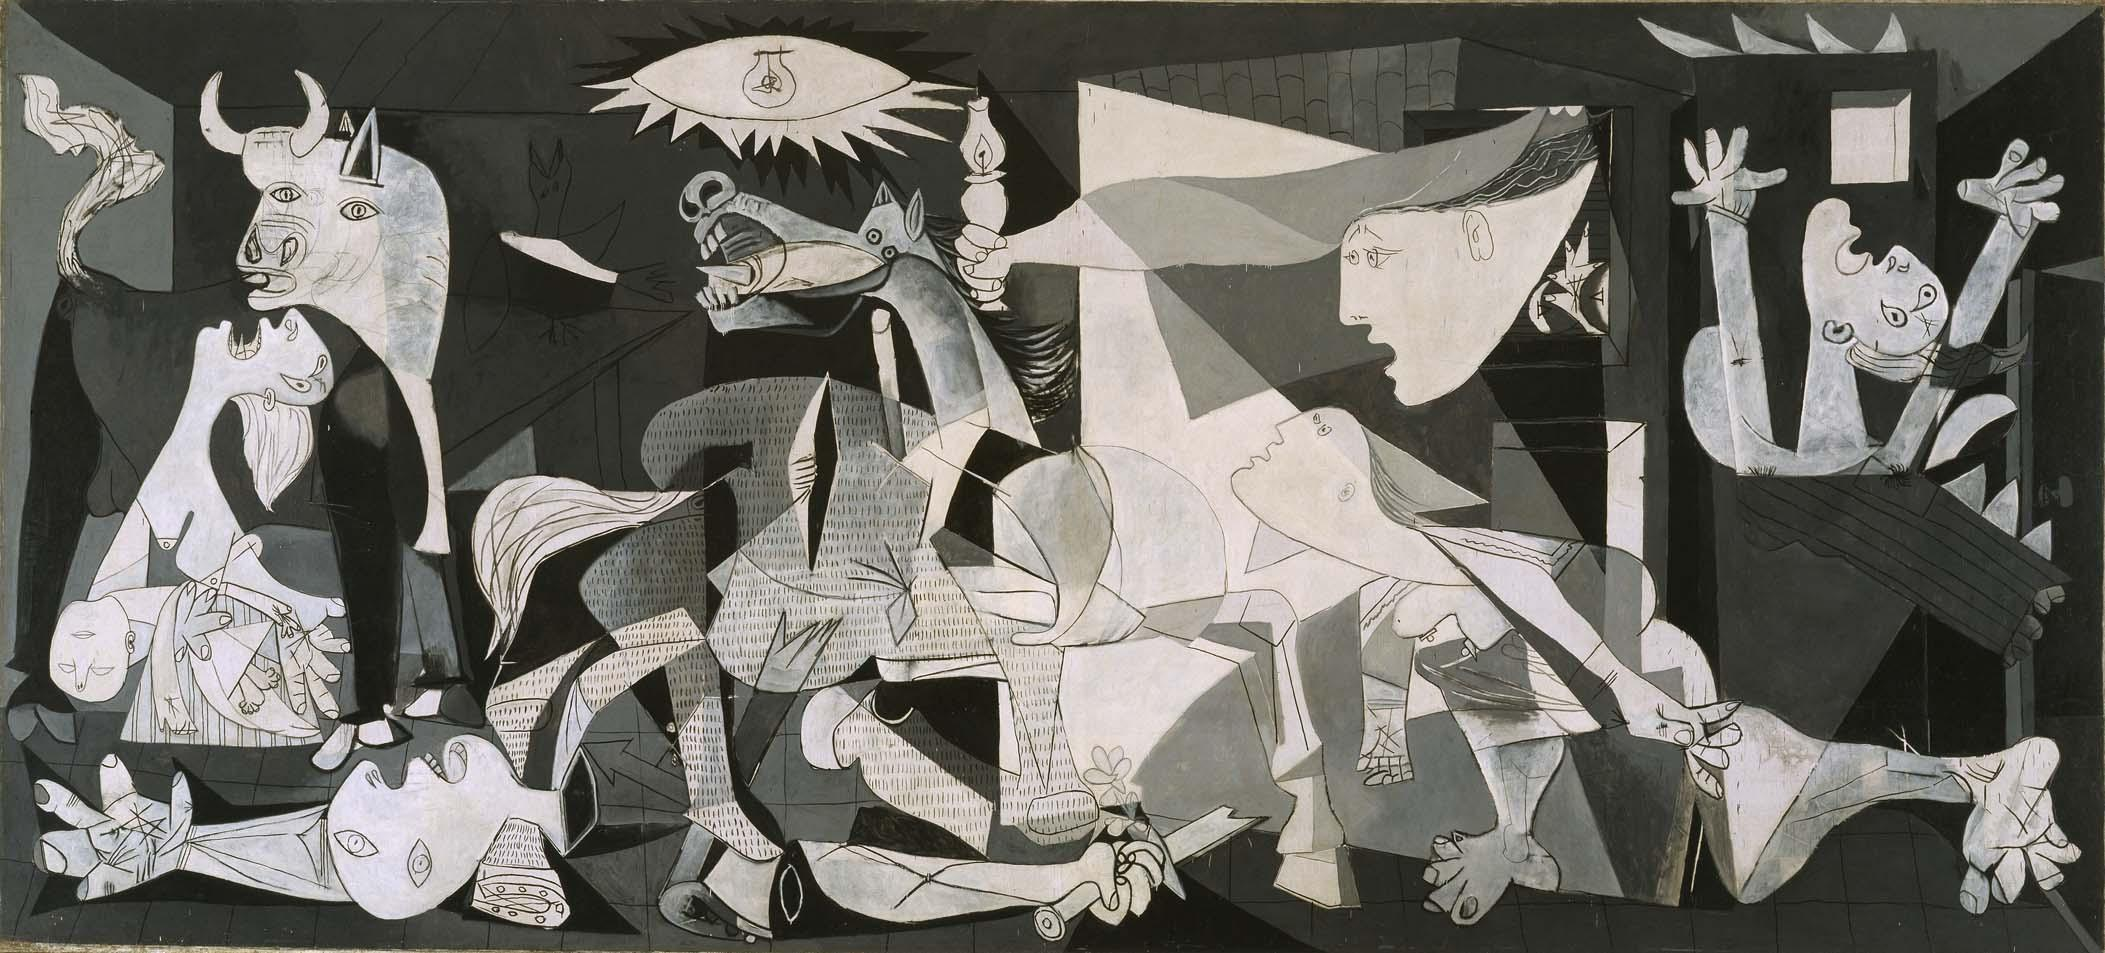 [Guernica by Pablo Picasso completed in June 1937]